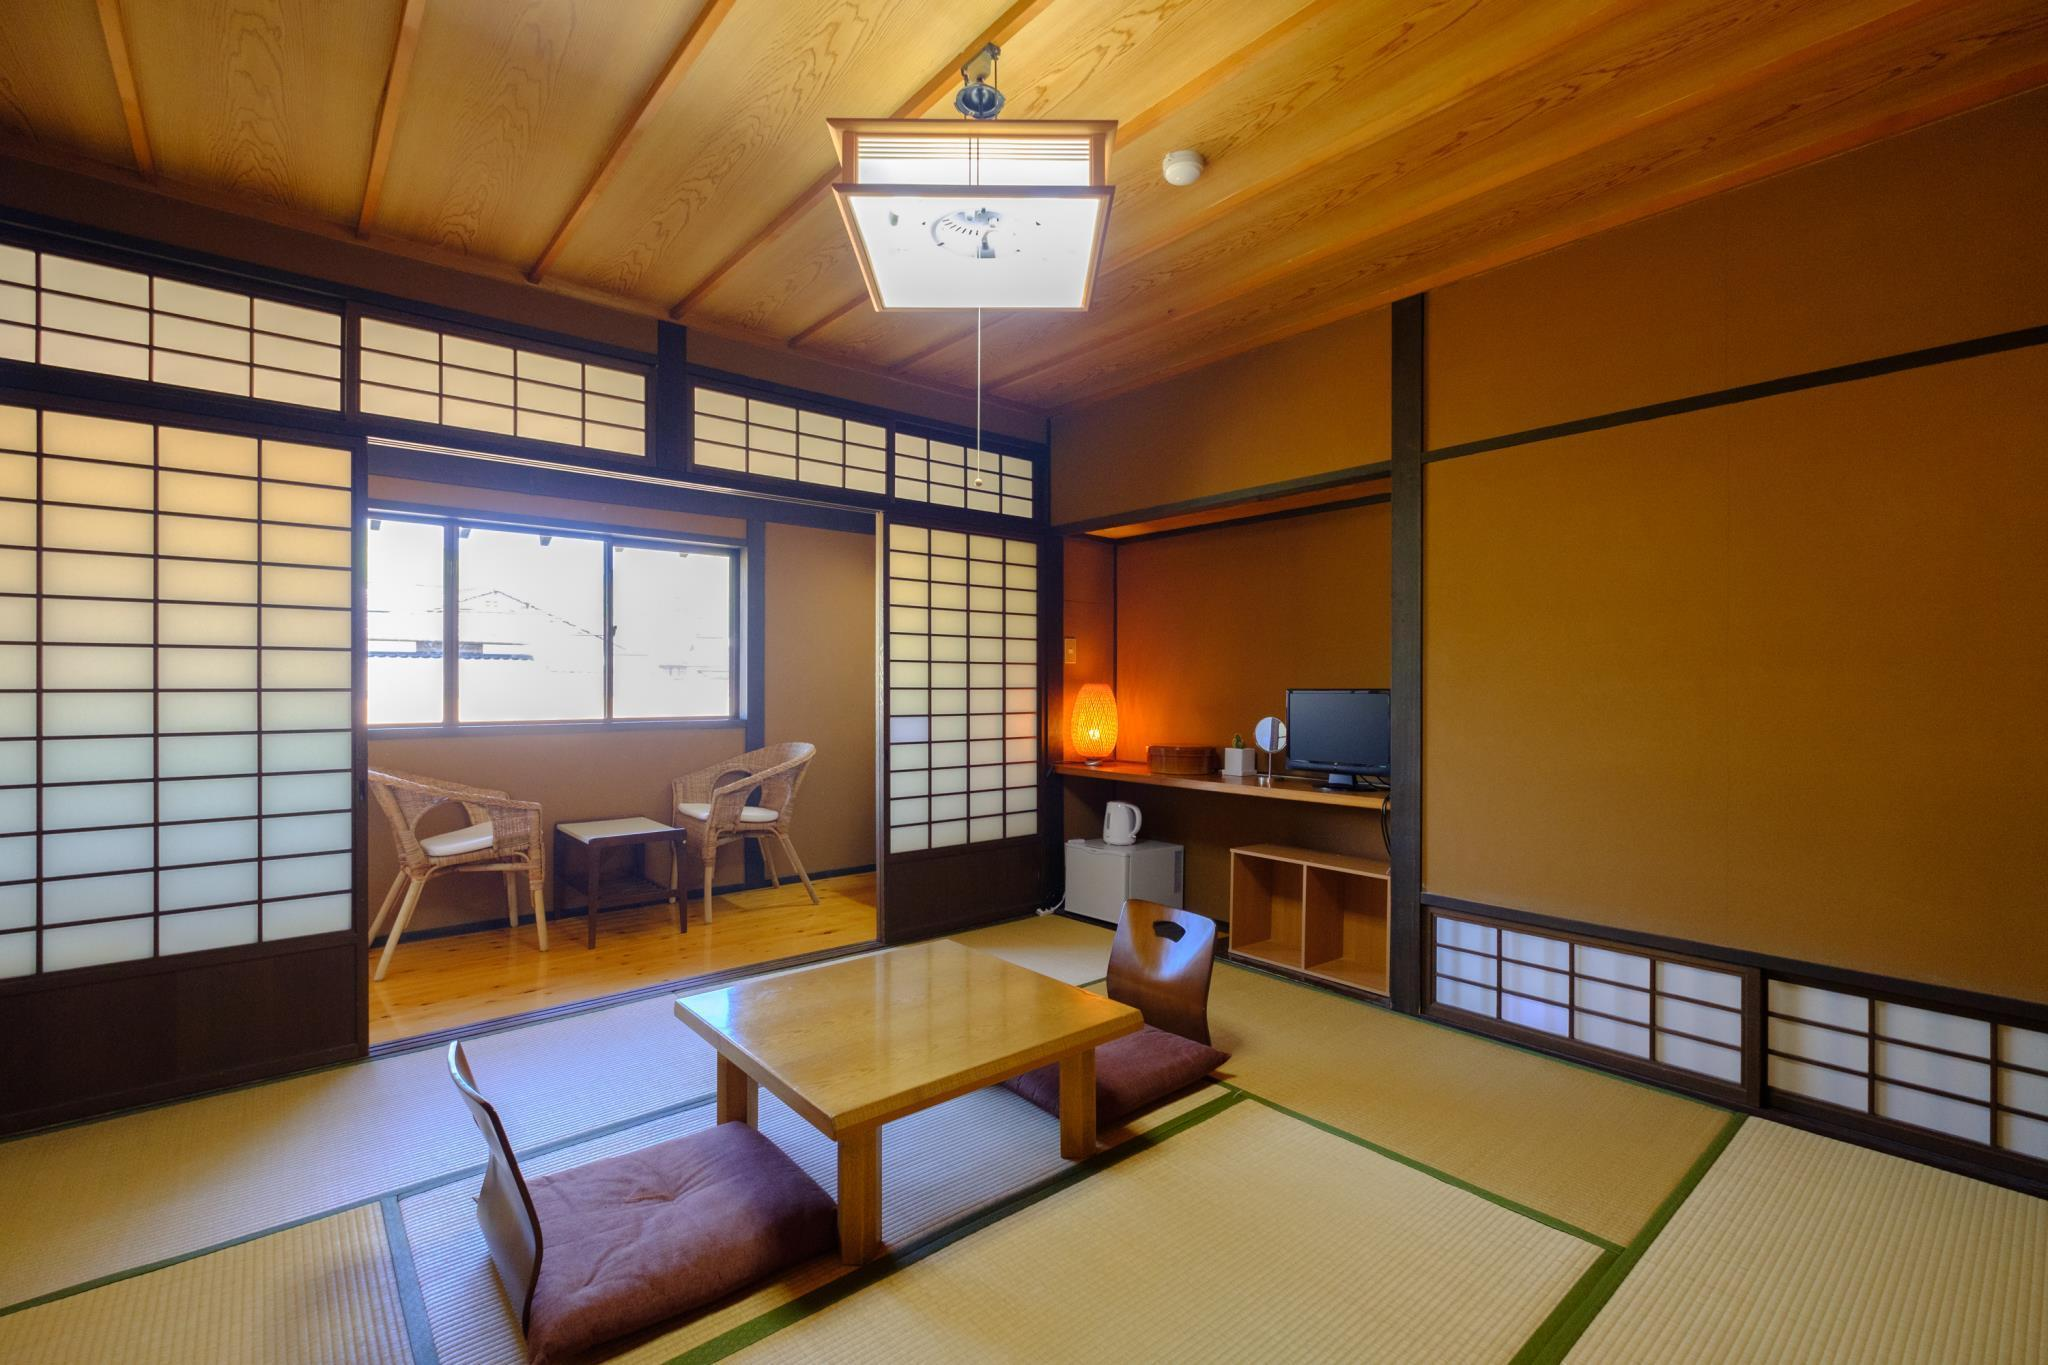 日式房(8张榻榻米)-带公共浴室 (Japanese Style Room with 8 Tatami and Shared Bathroom)